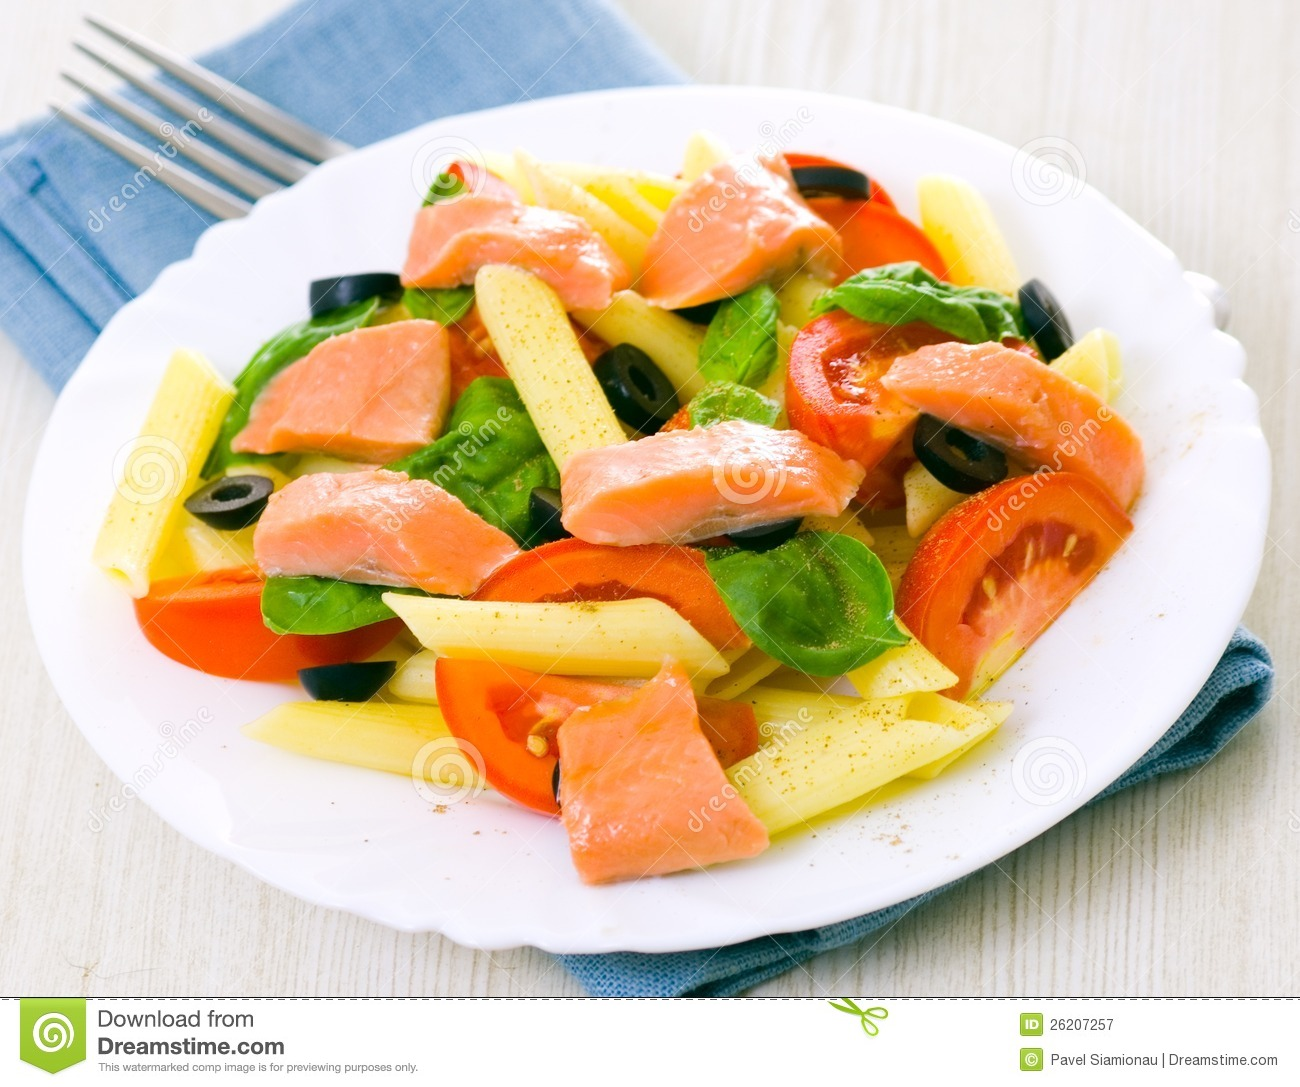 More similar stock images of ` Pasta salad with fish `